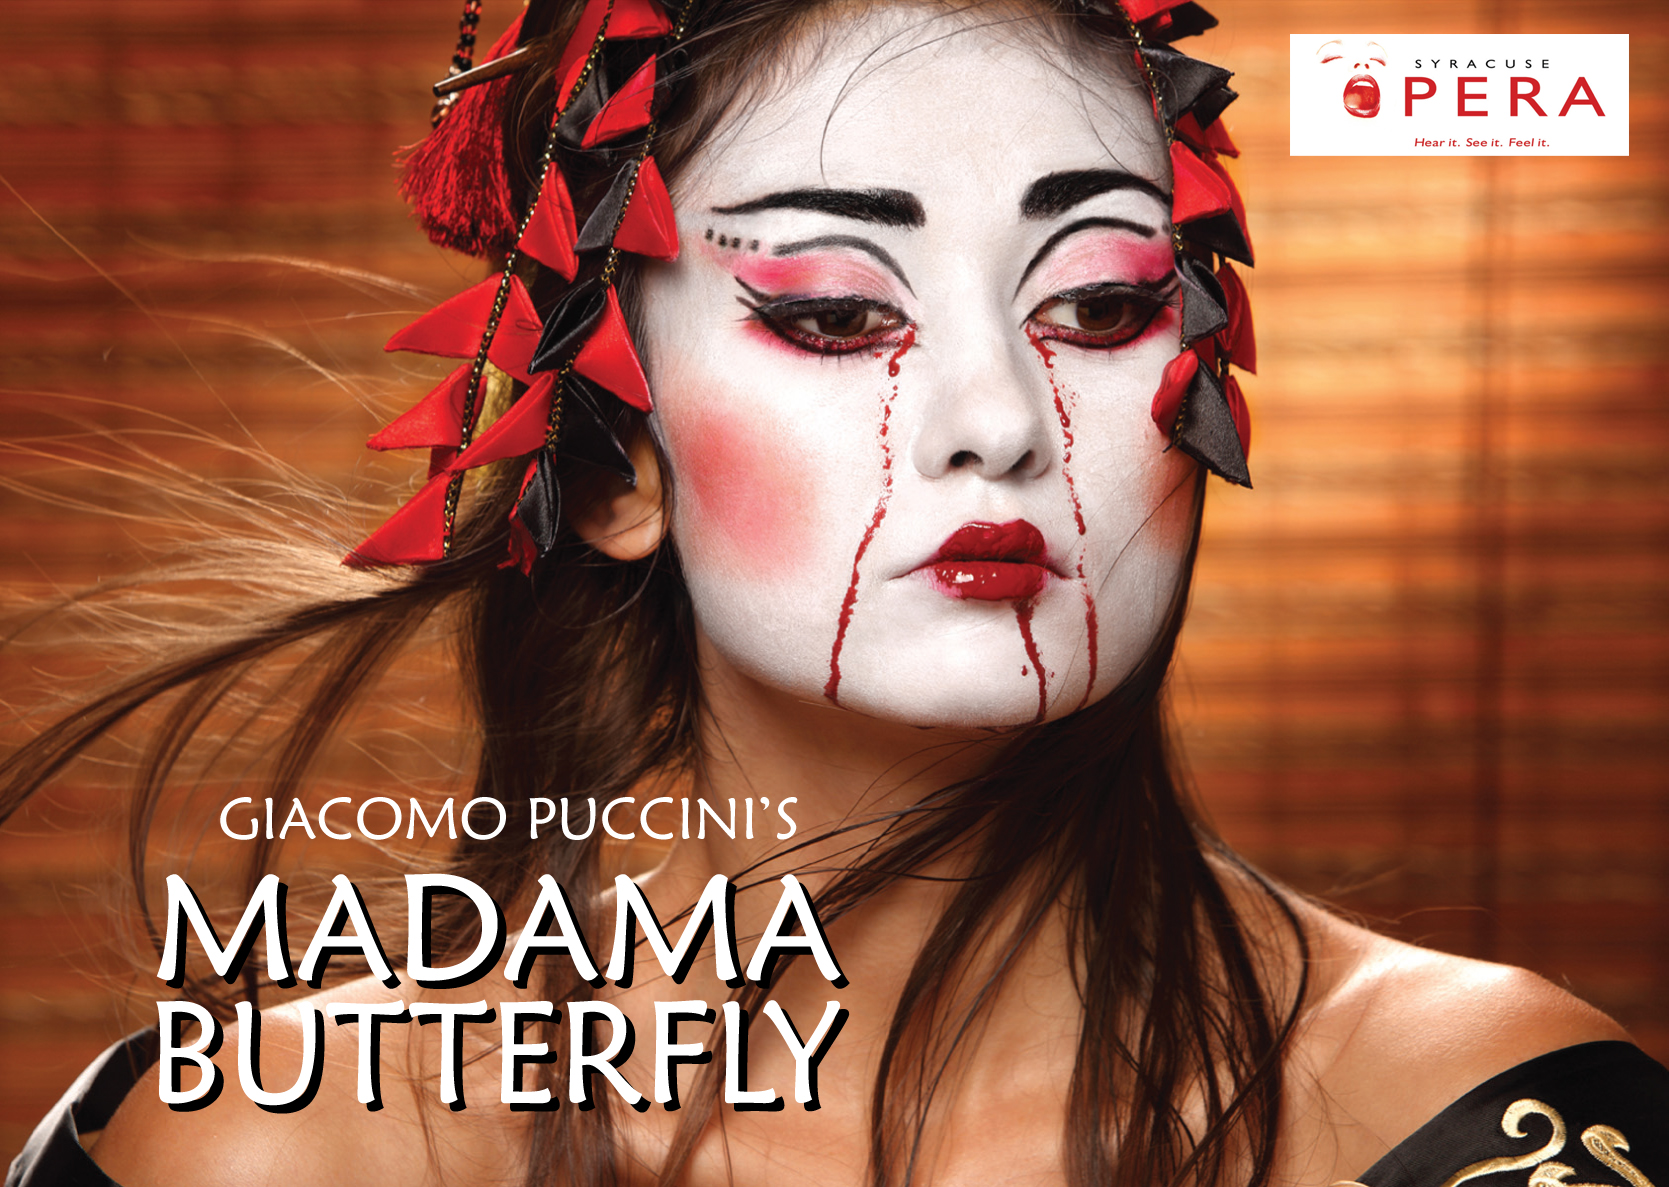 A Glimpse At The Real Madame Butterfly 171 Jmledwellwrites